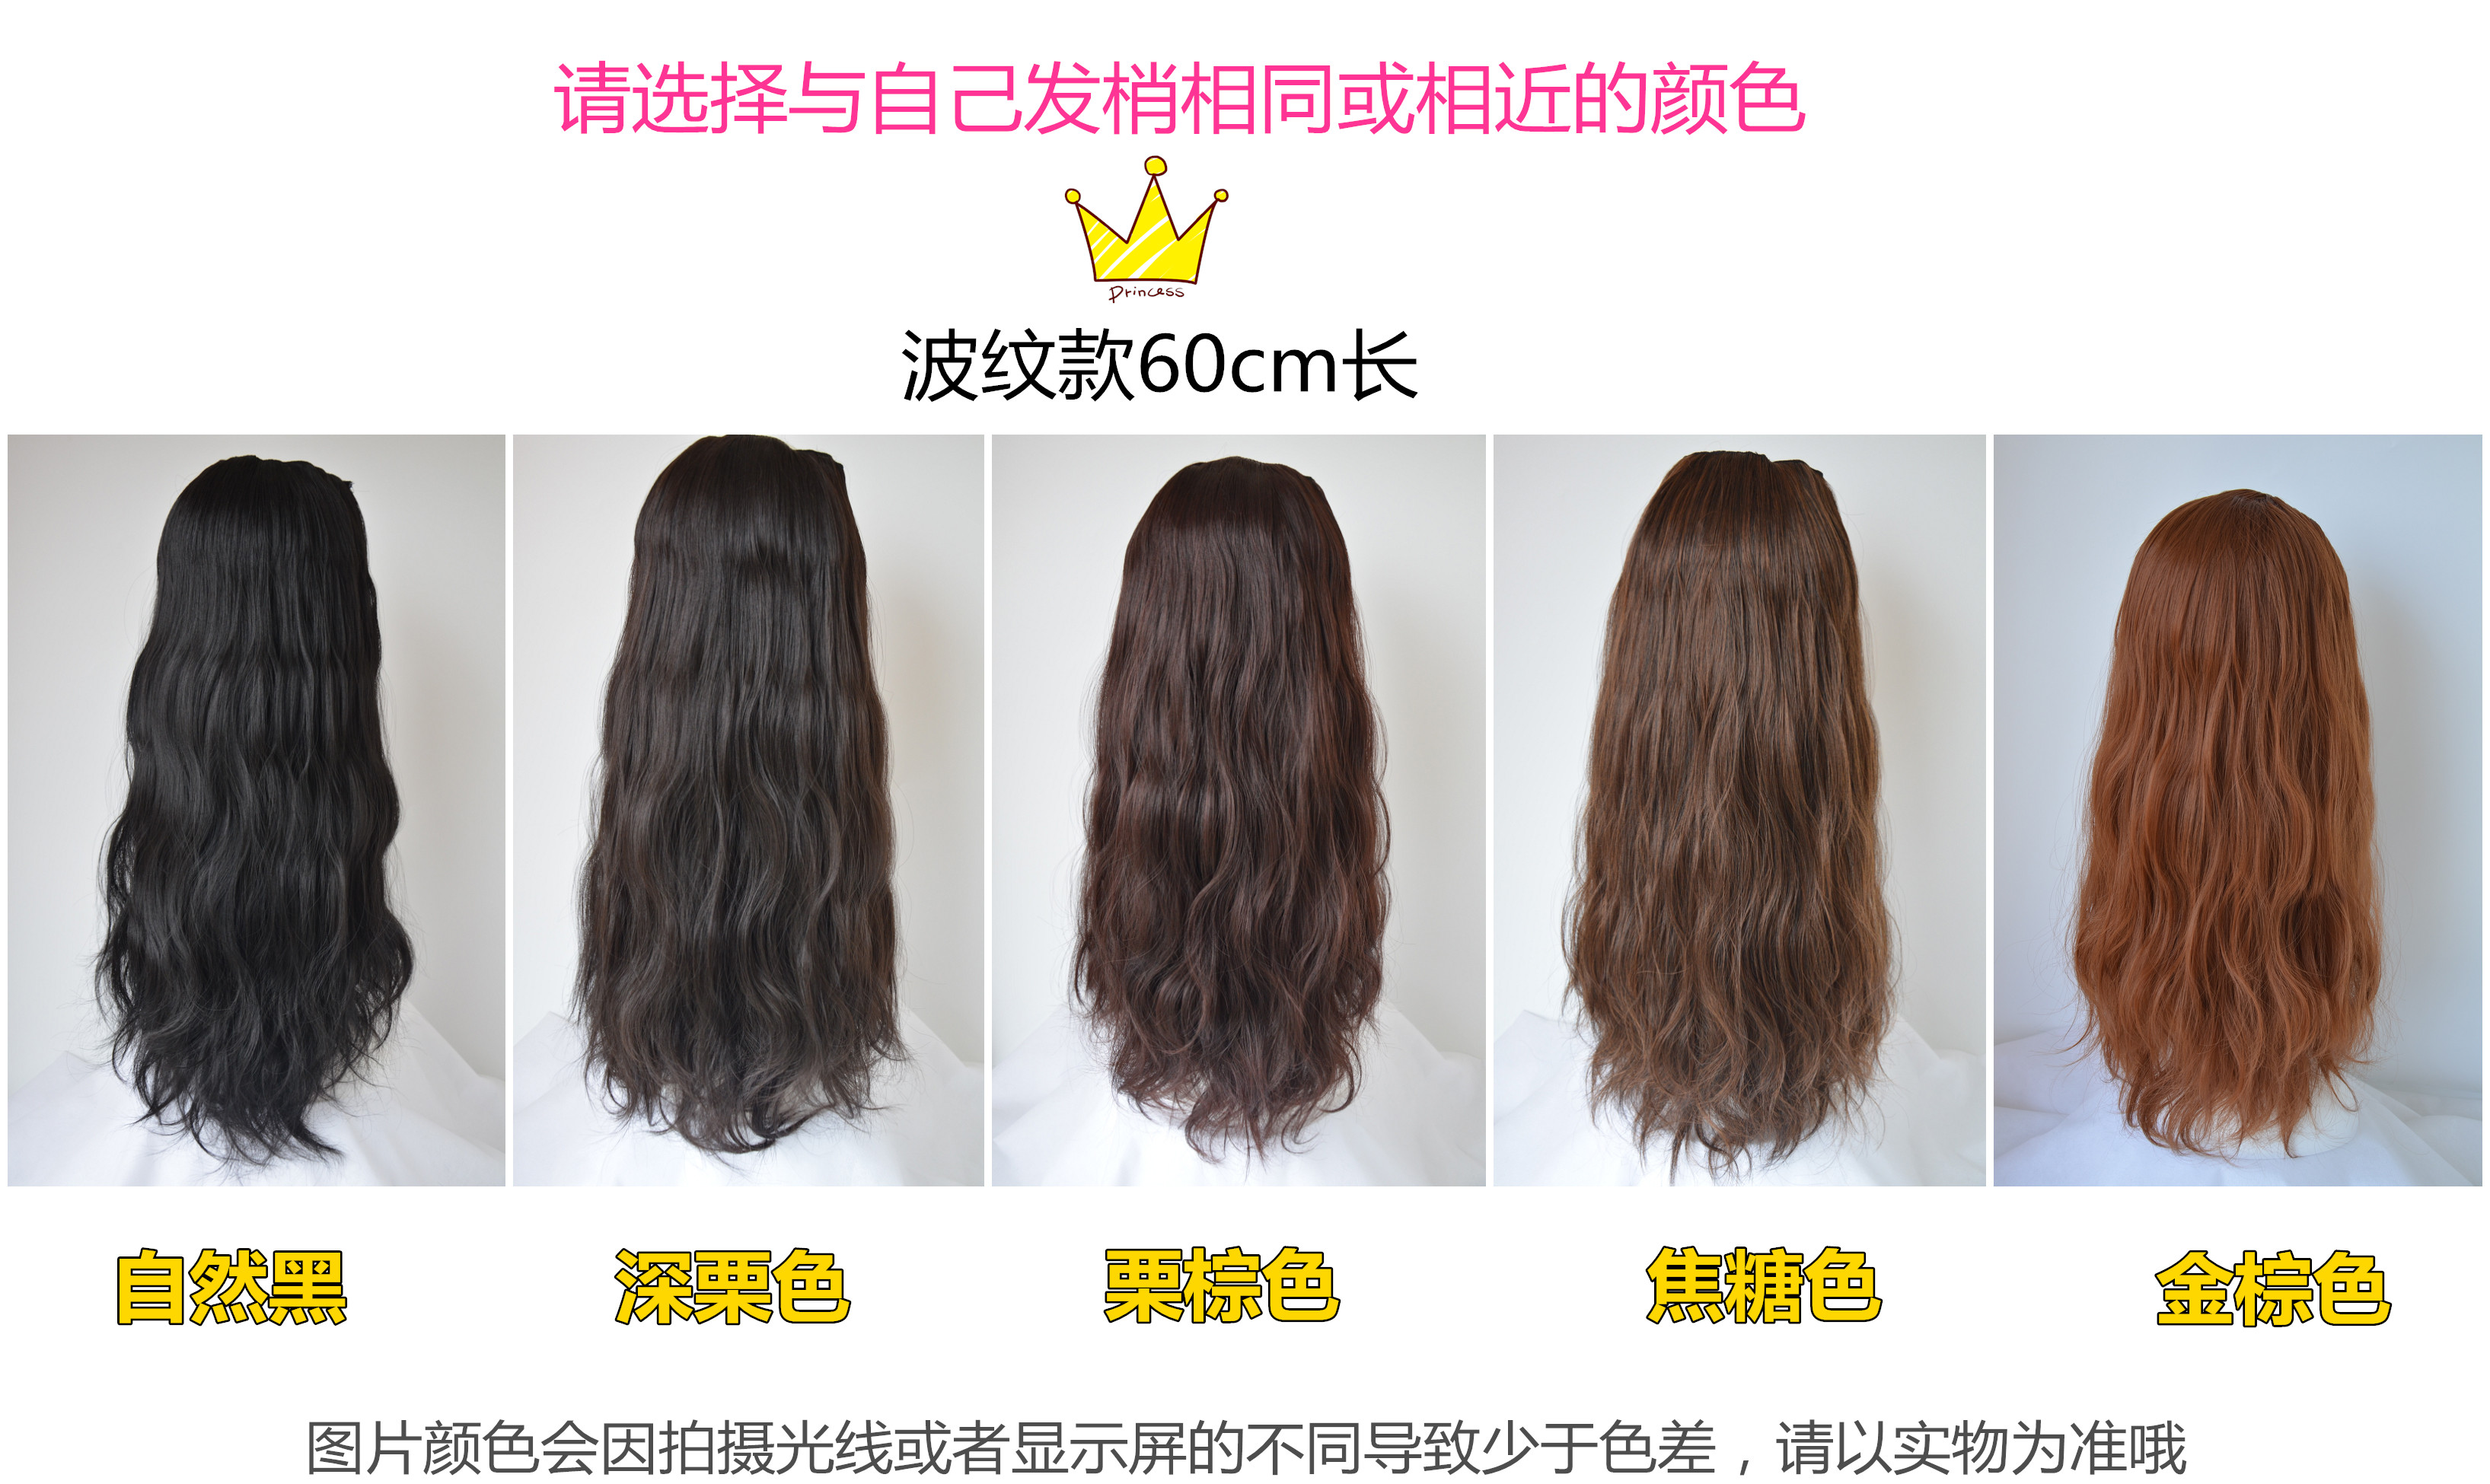 Wig women\u0027s long curly hair U,shaped half head cover big wave curly wig  piece without trace invisible hair replacement natural fluffy